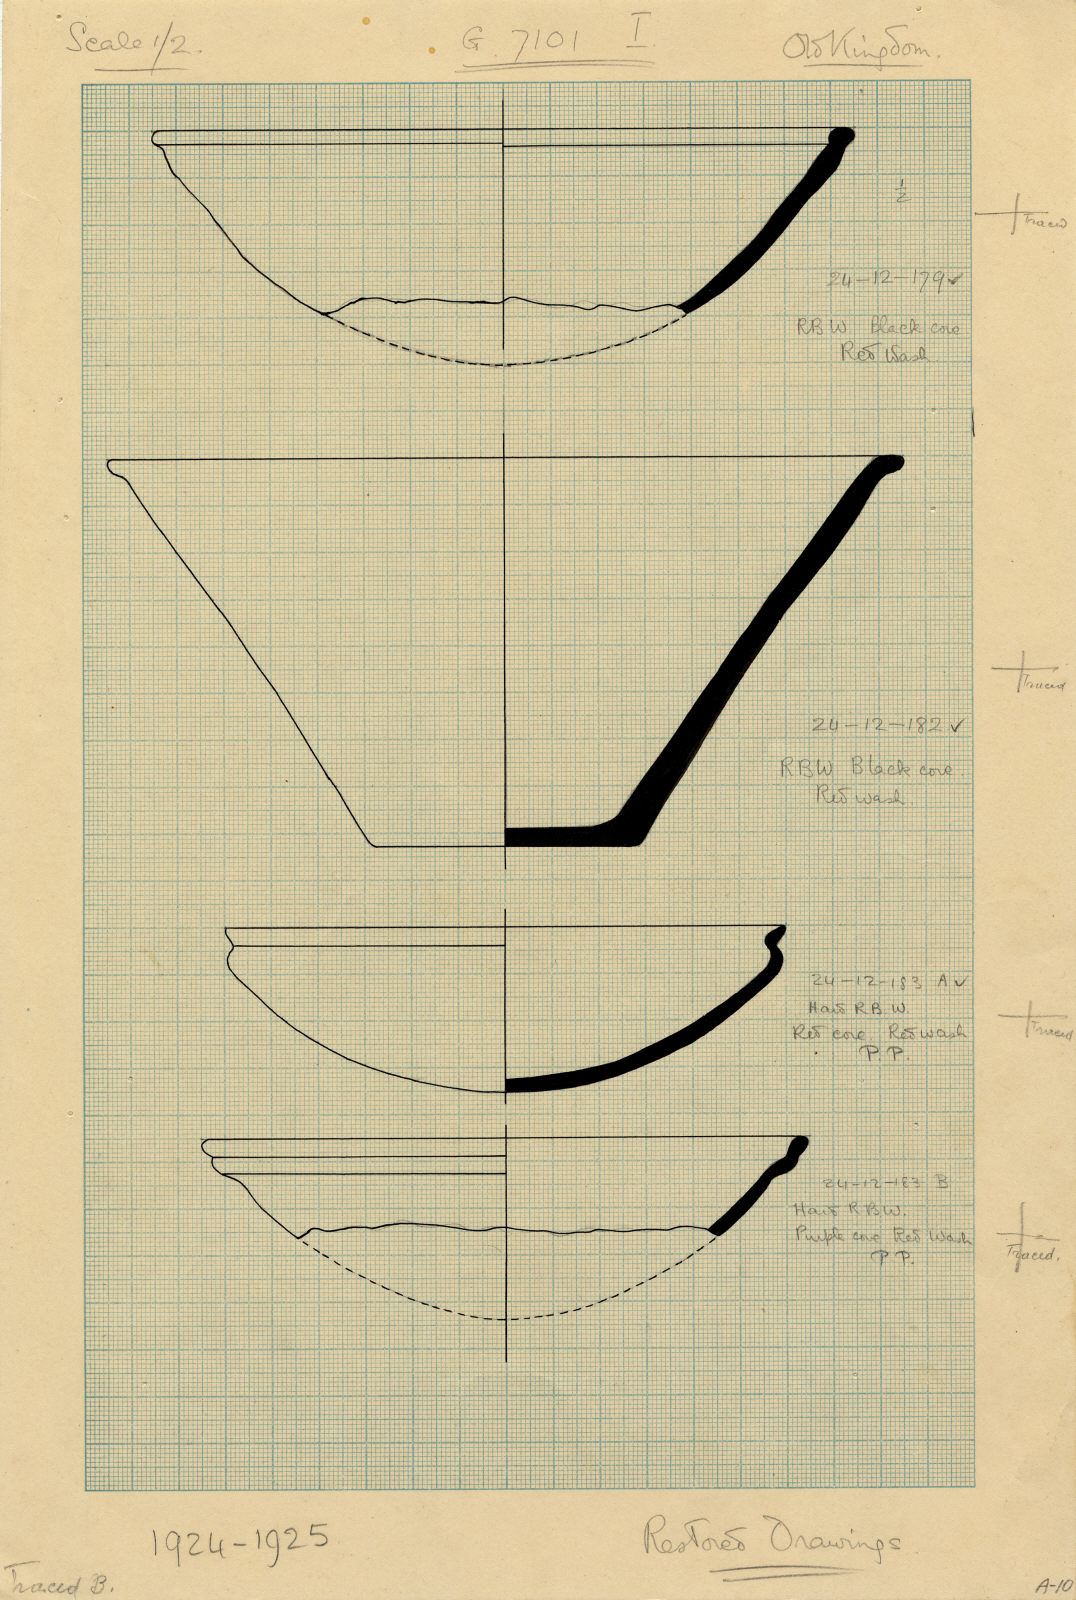 Drawings: G 7101, Shaft I: pottery, bowls